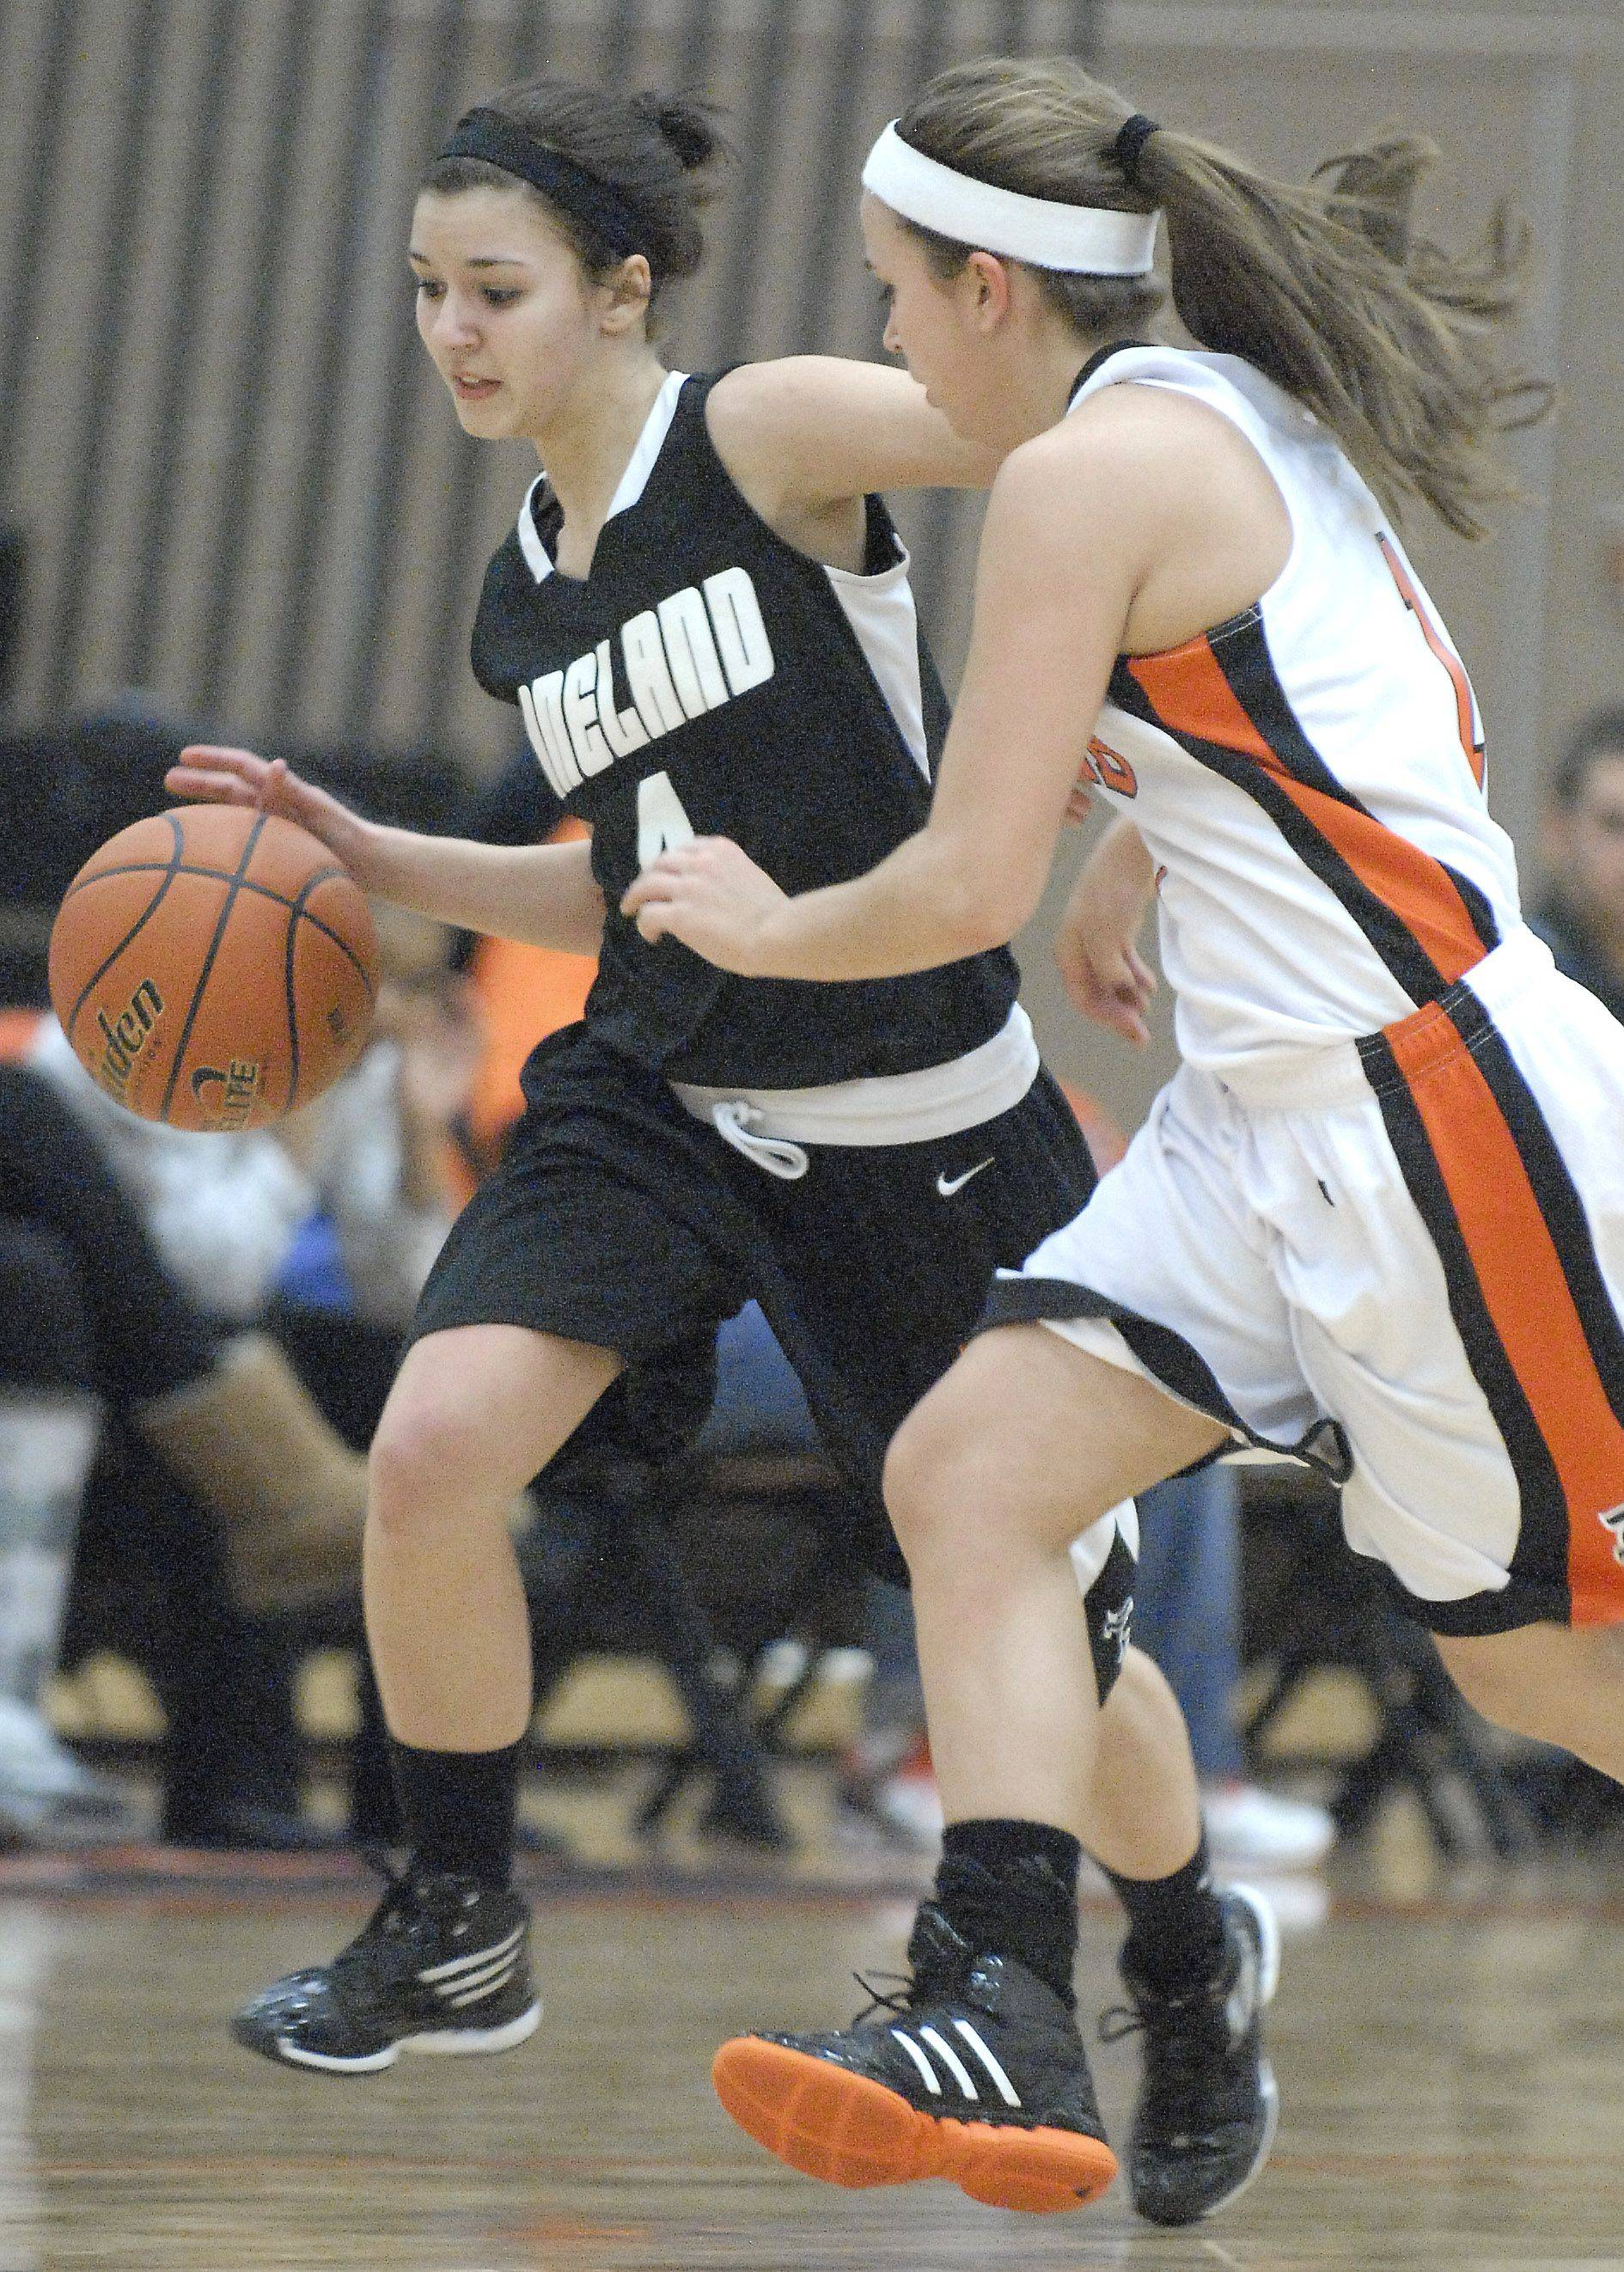 Laura Stoecker/lstoecker@dailyherald.comKaneland's Alli Liss runs head to head on the way to the hoop with DeKalb's Alli Smith in the third quarter on Tuesday, January 31.